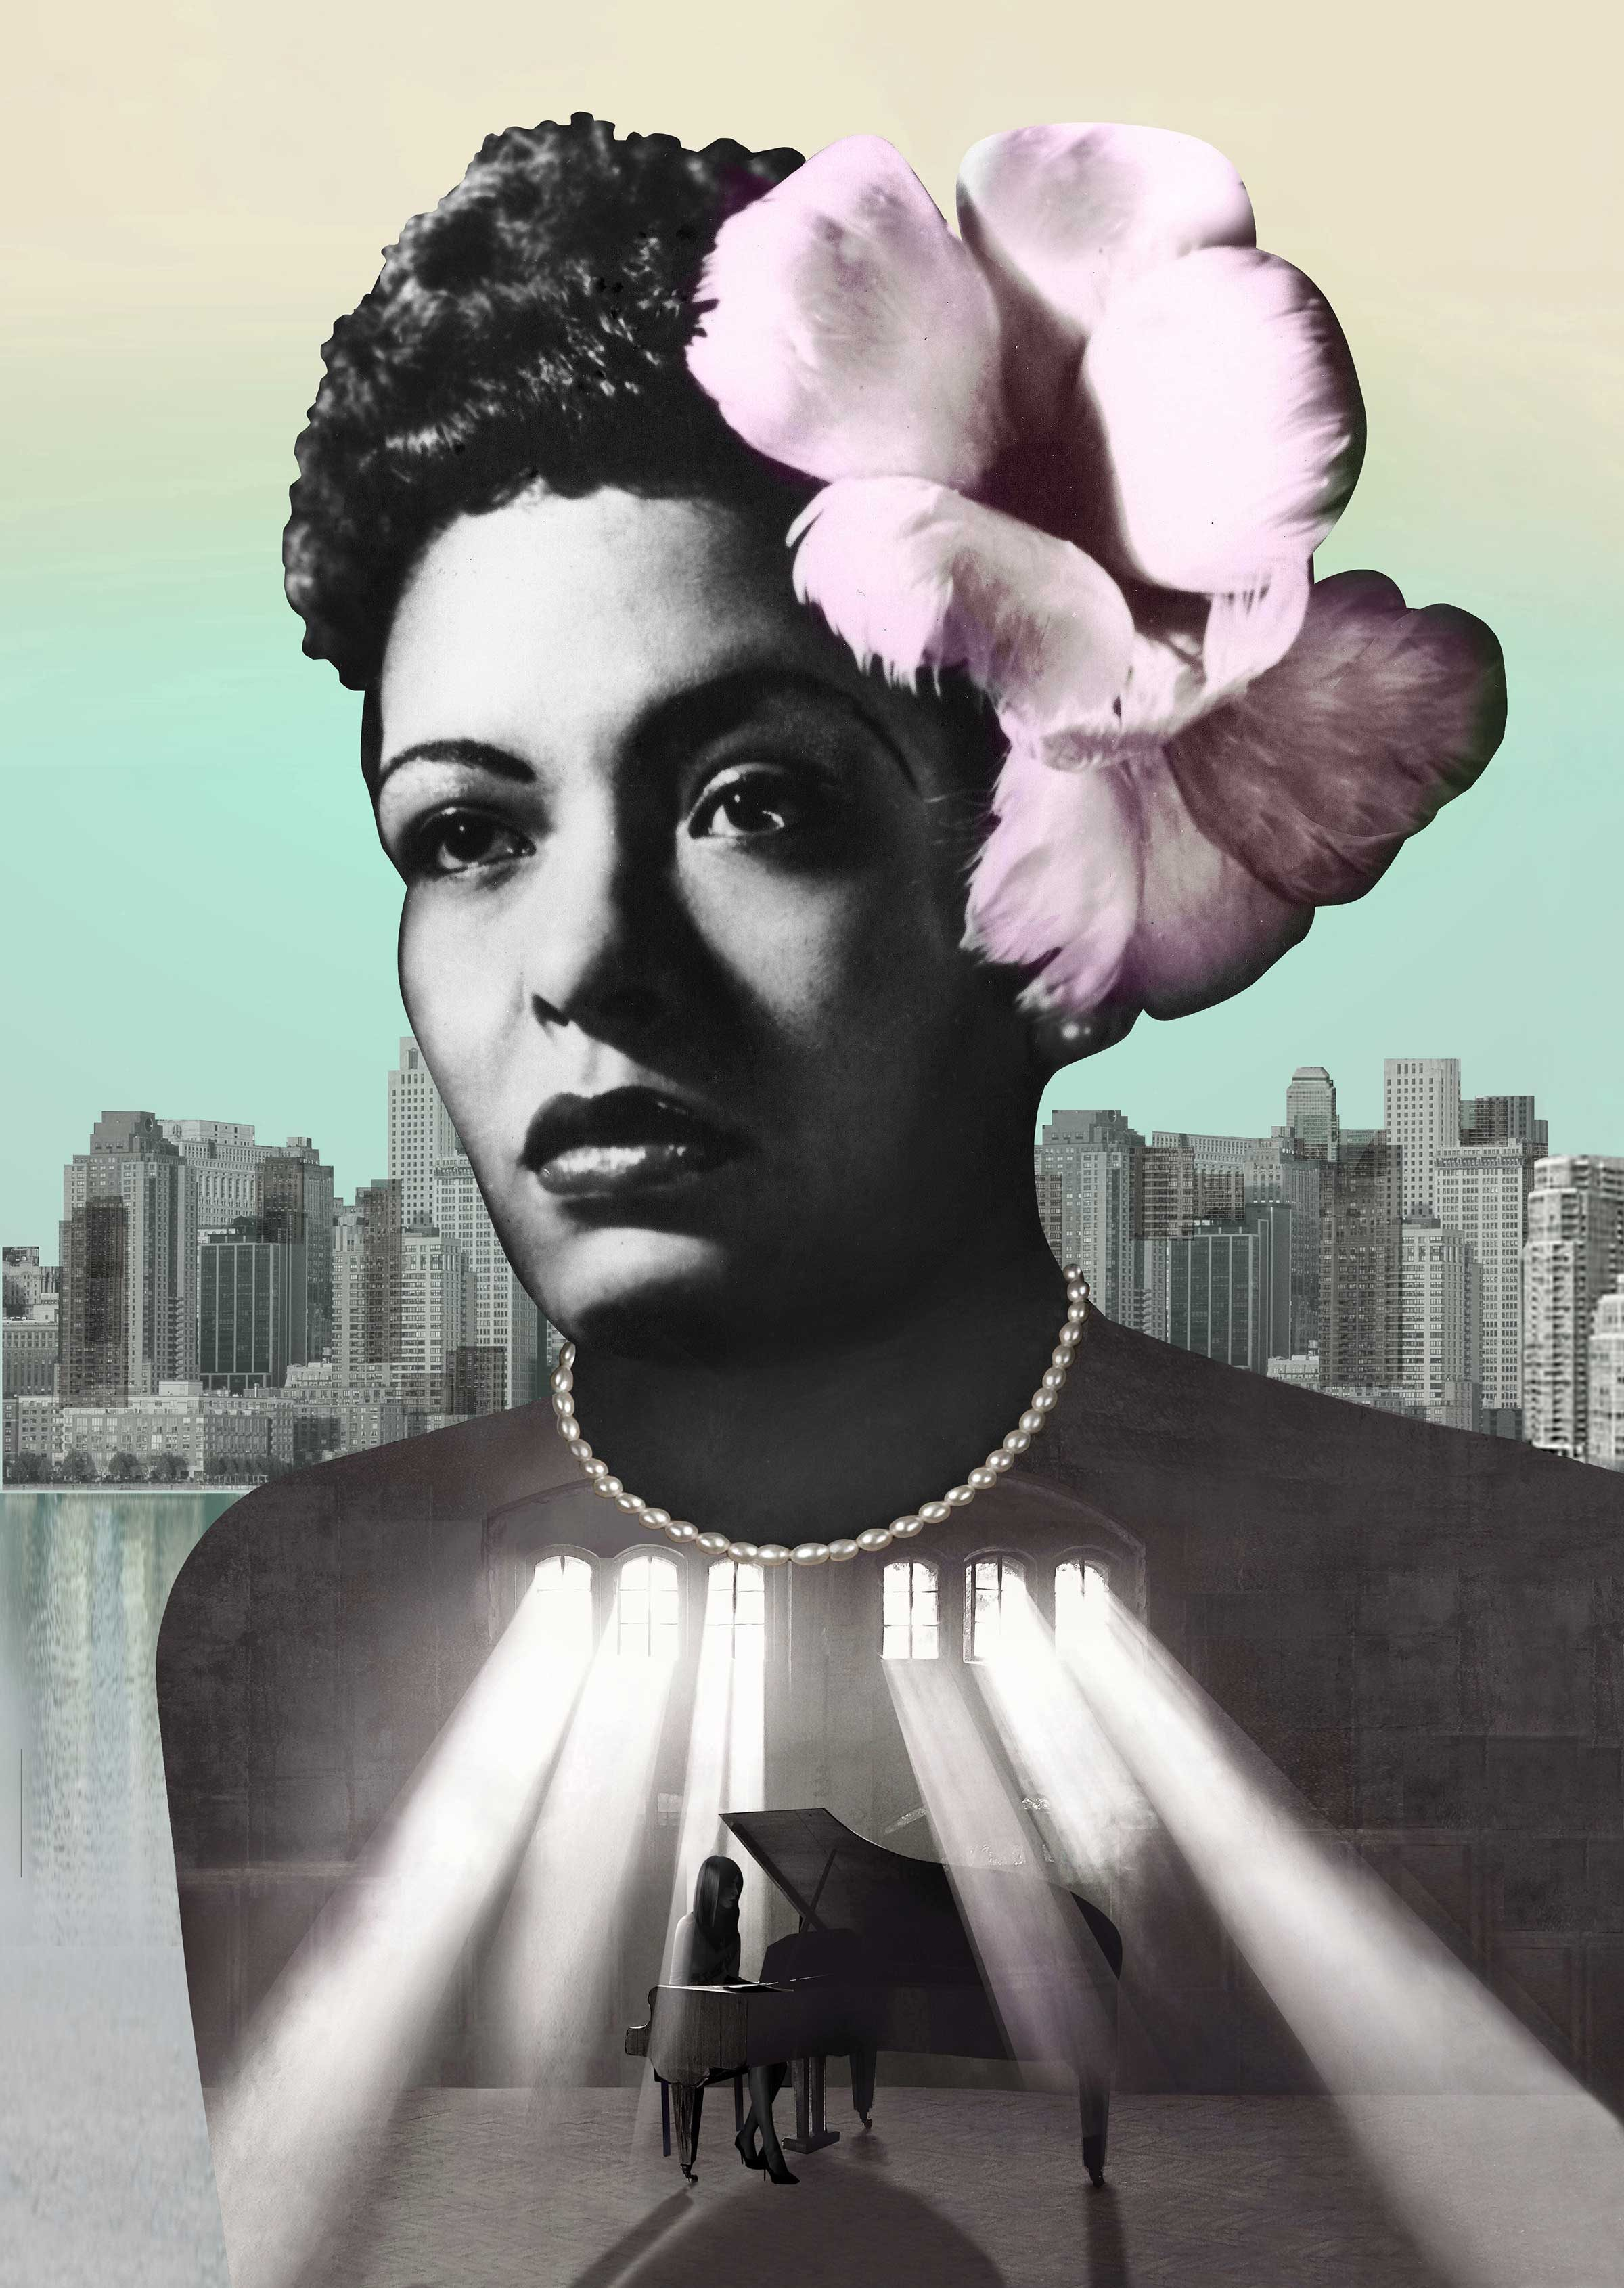 billie holiday - photo #13